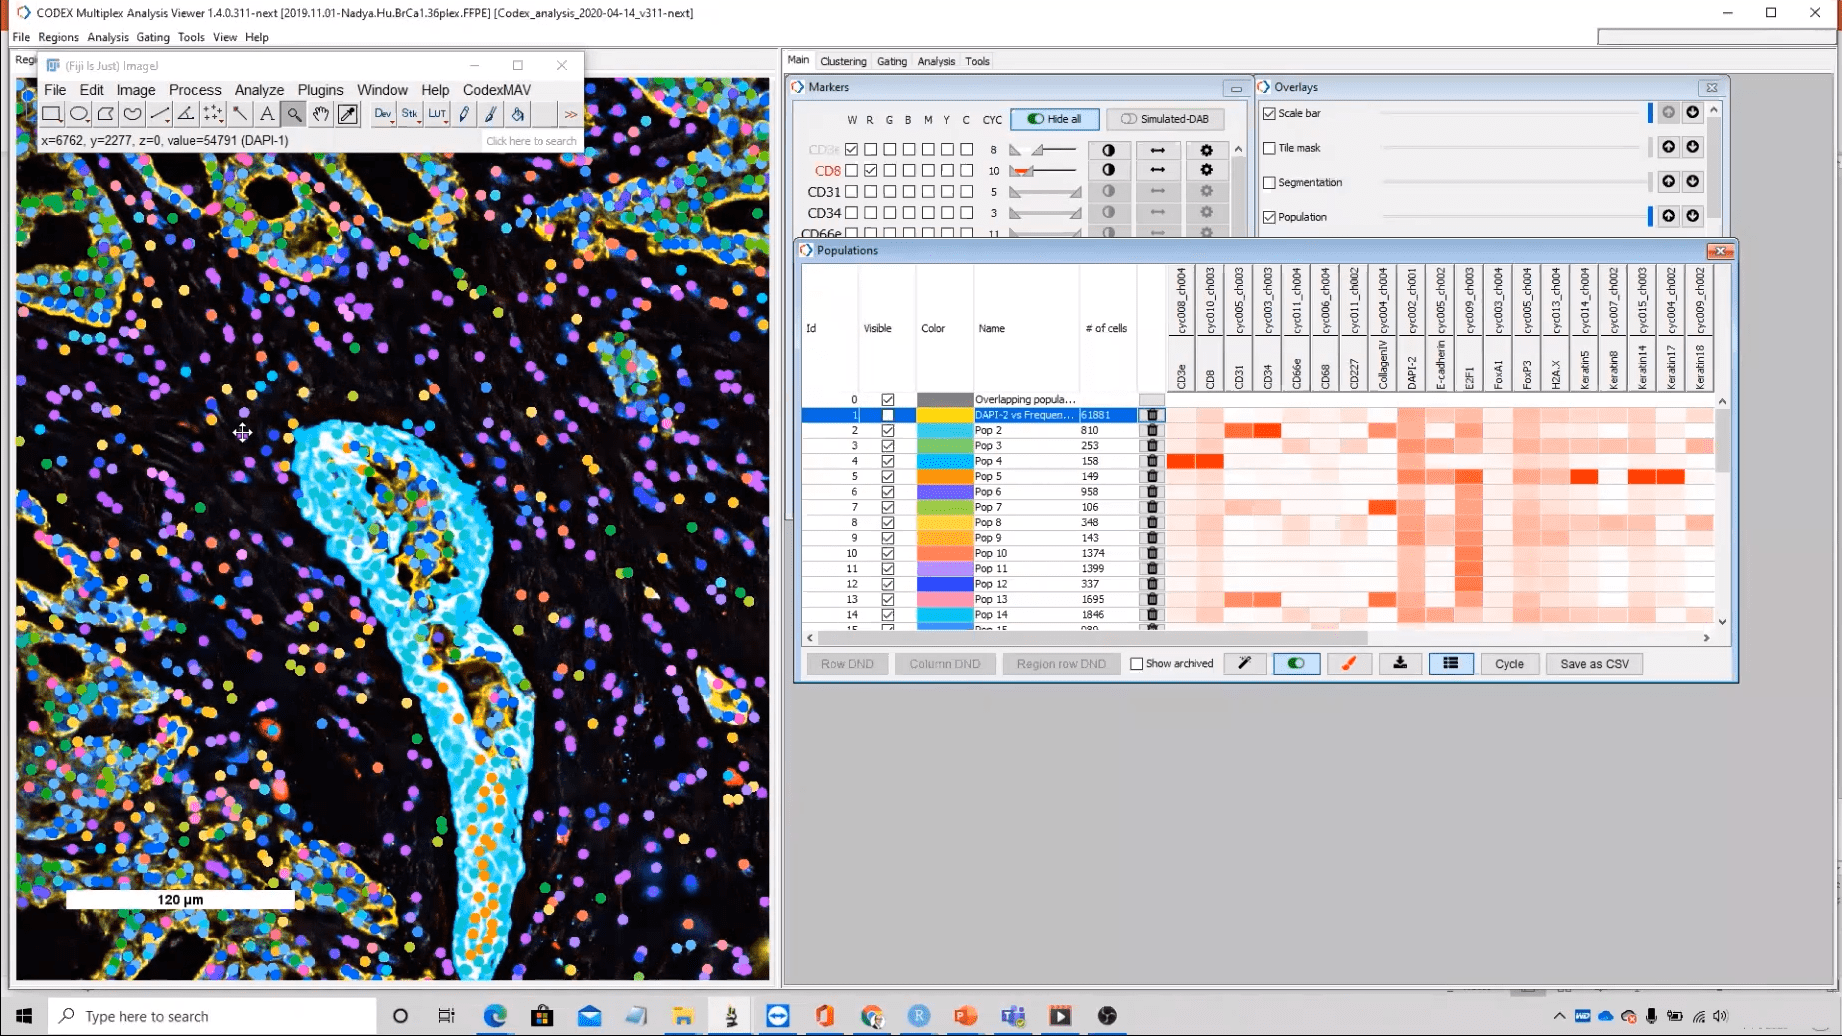 Clusters visualized on tissue image in MAV